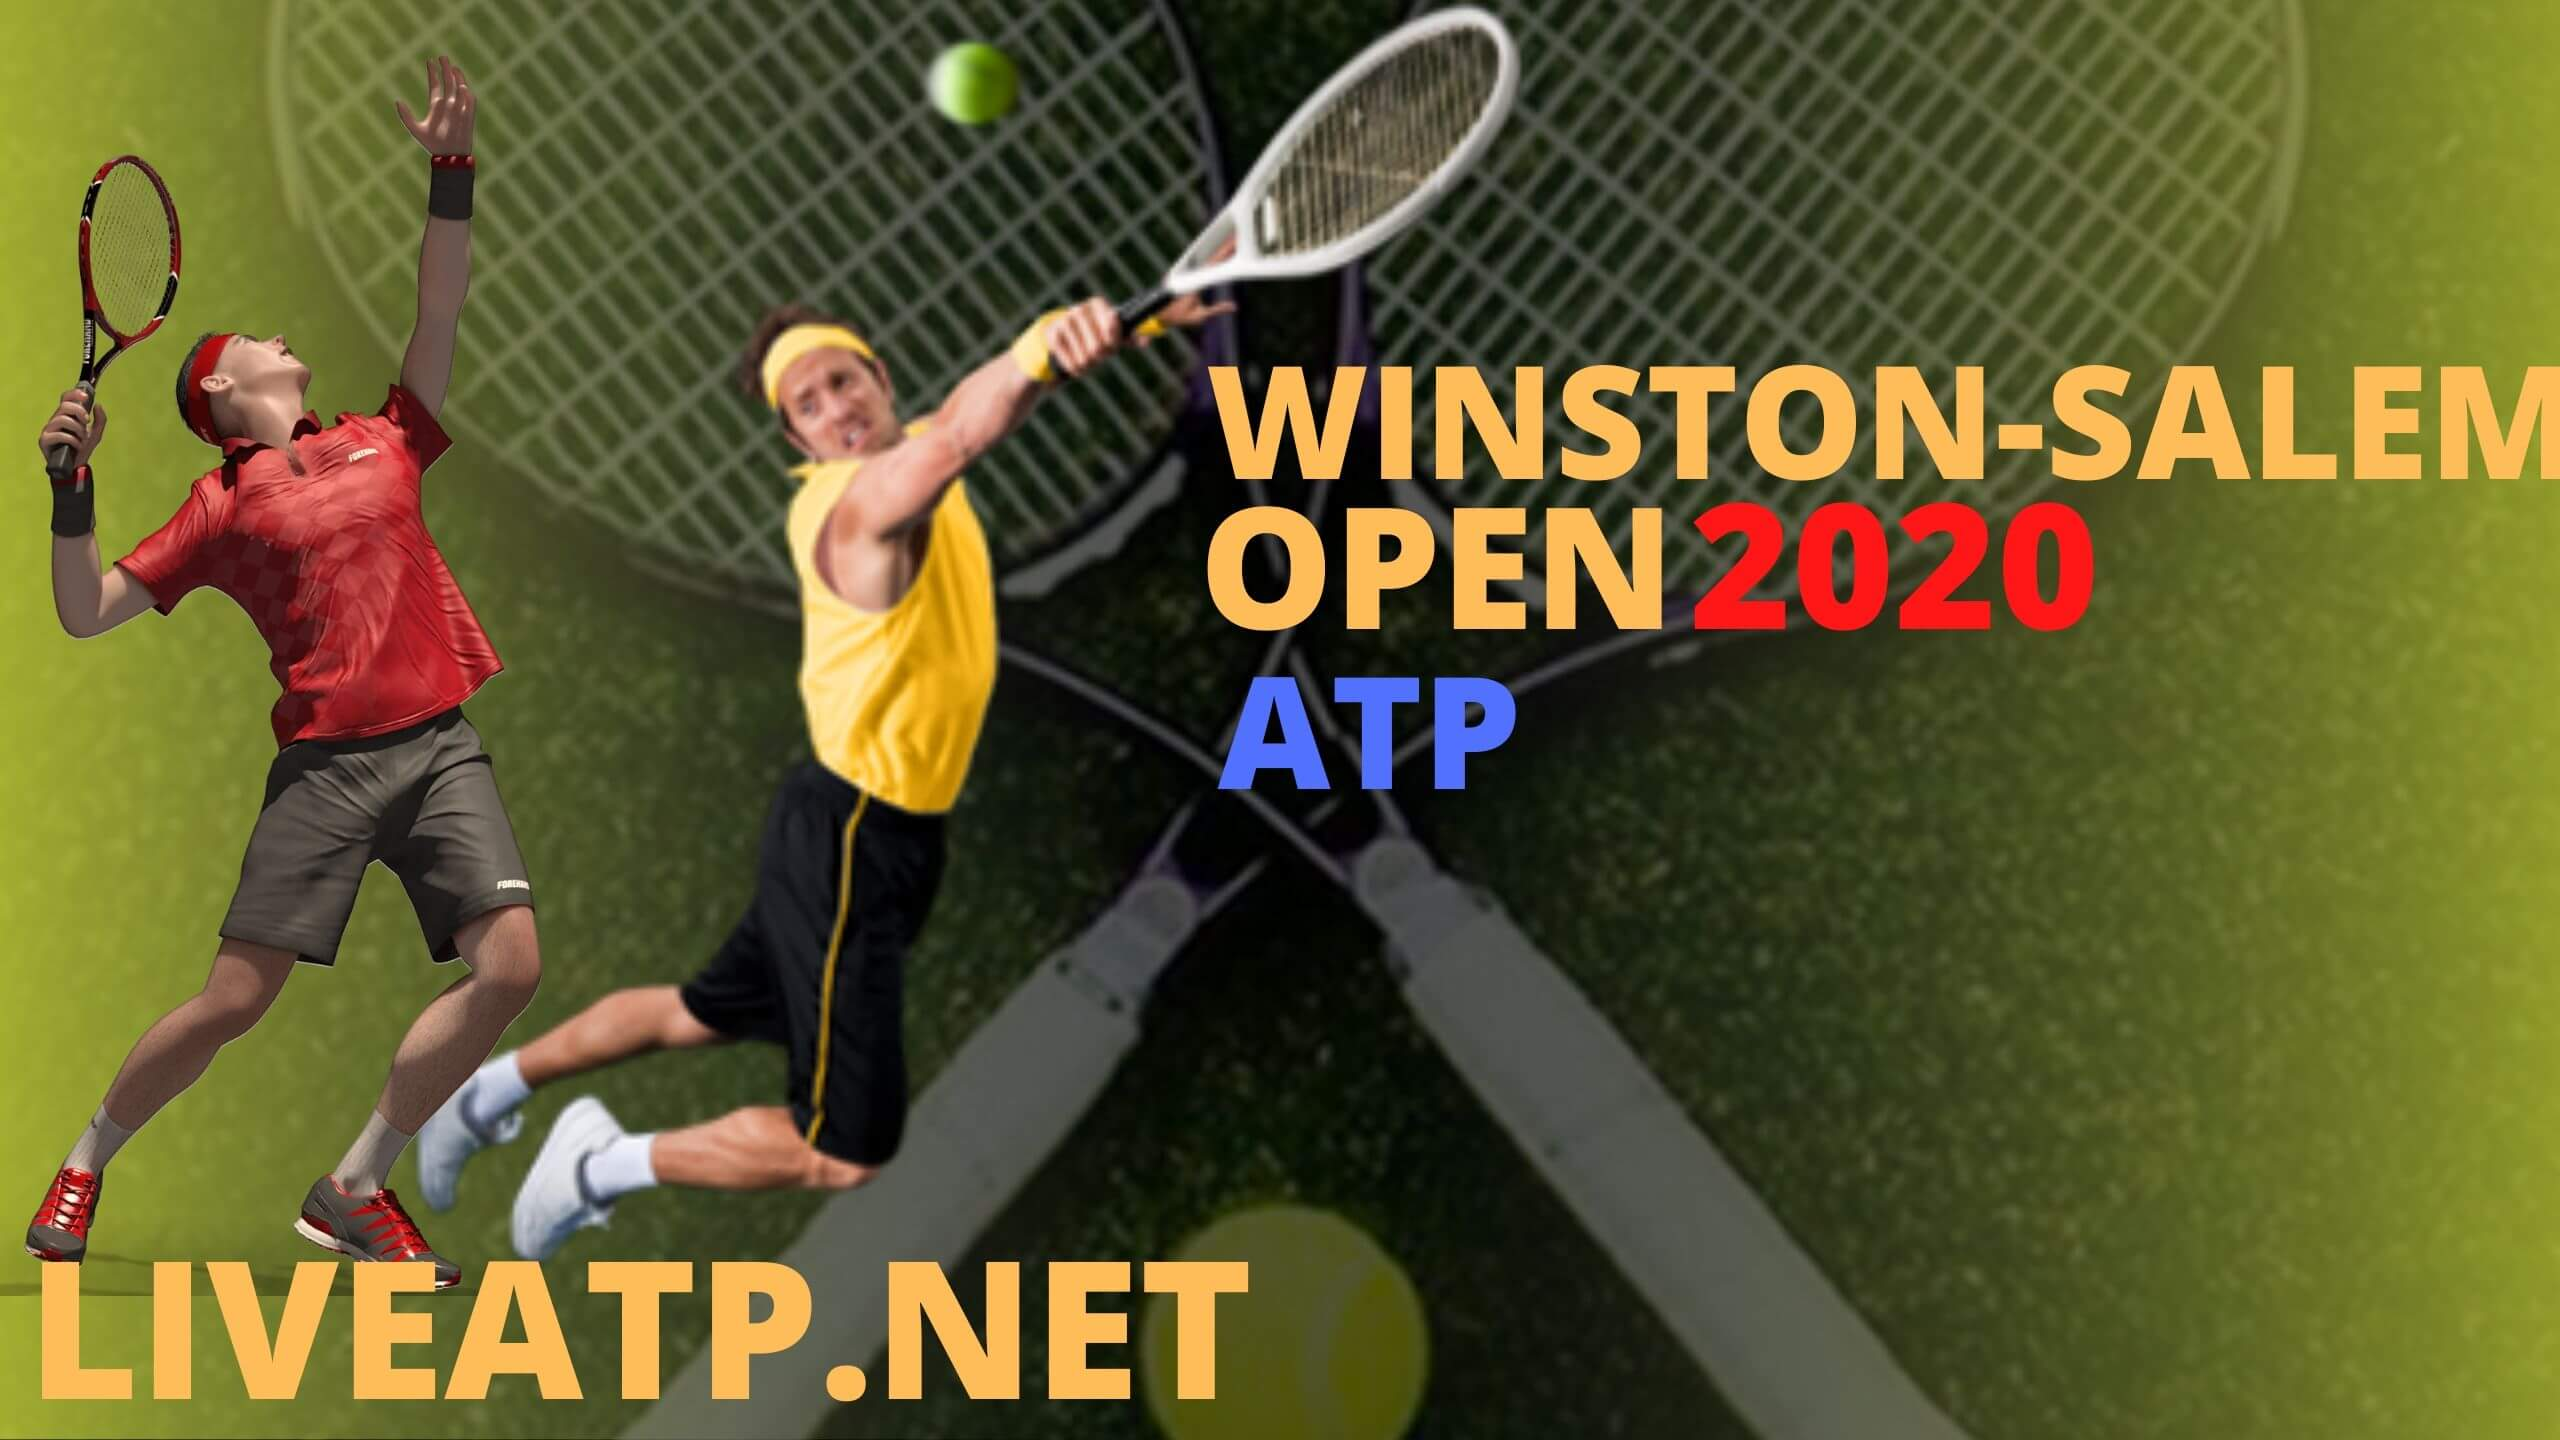 Winston Salem Open Live Stream 2020 | Day 2